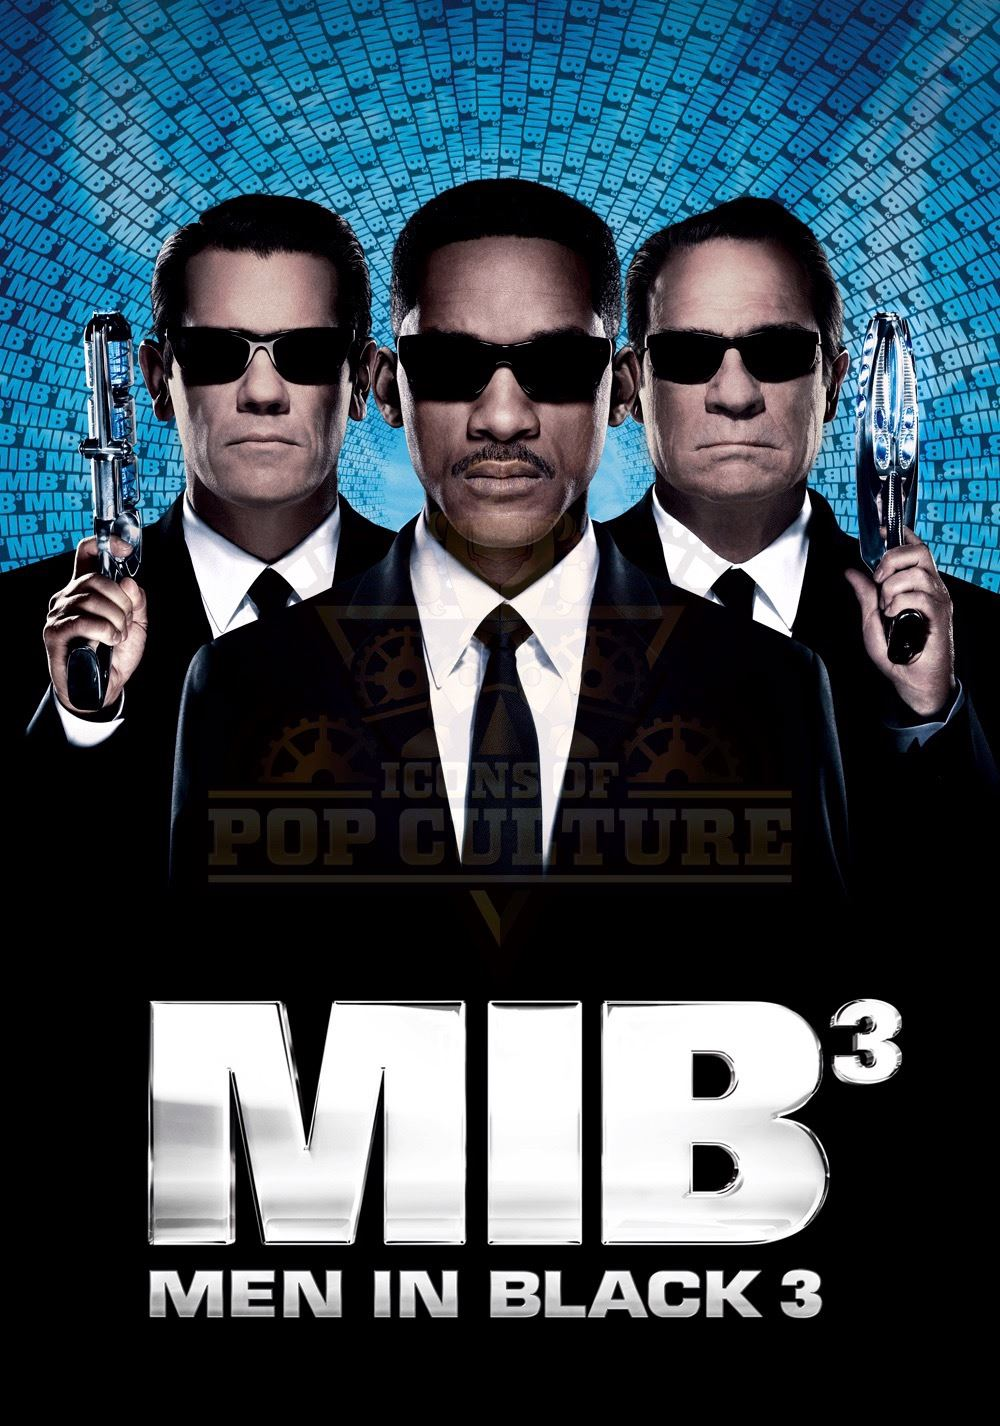 Men in Black 3 - Agent Js (Will Smith) MIB Suit - V521